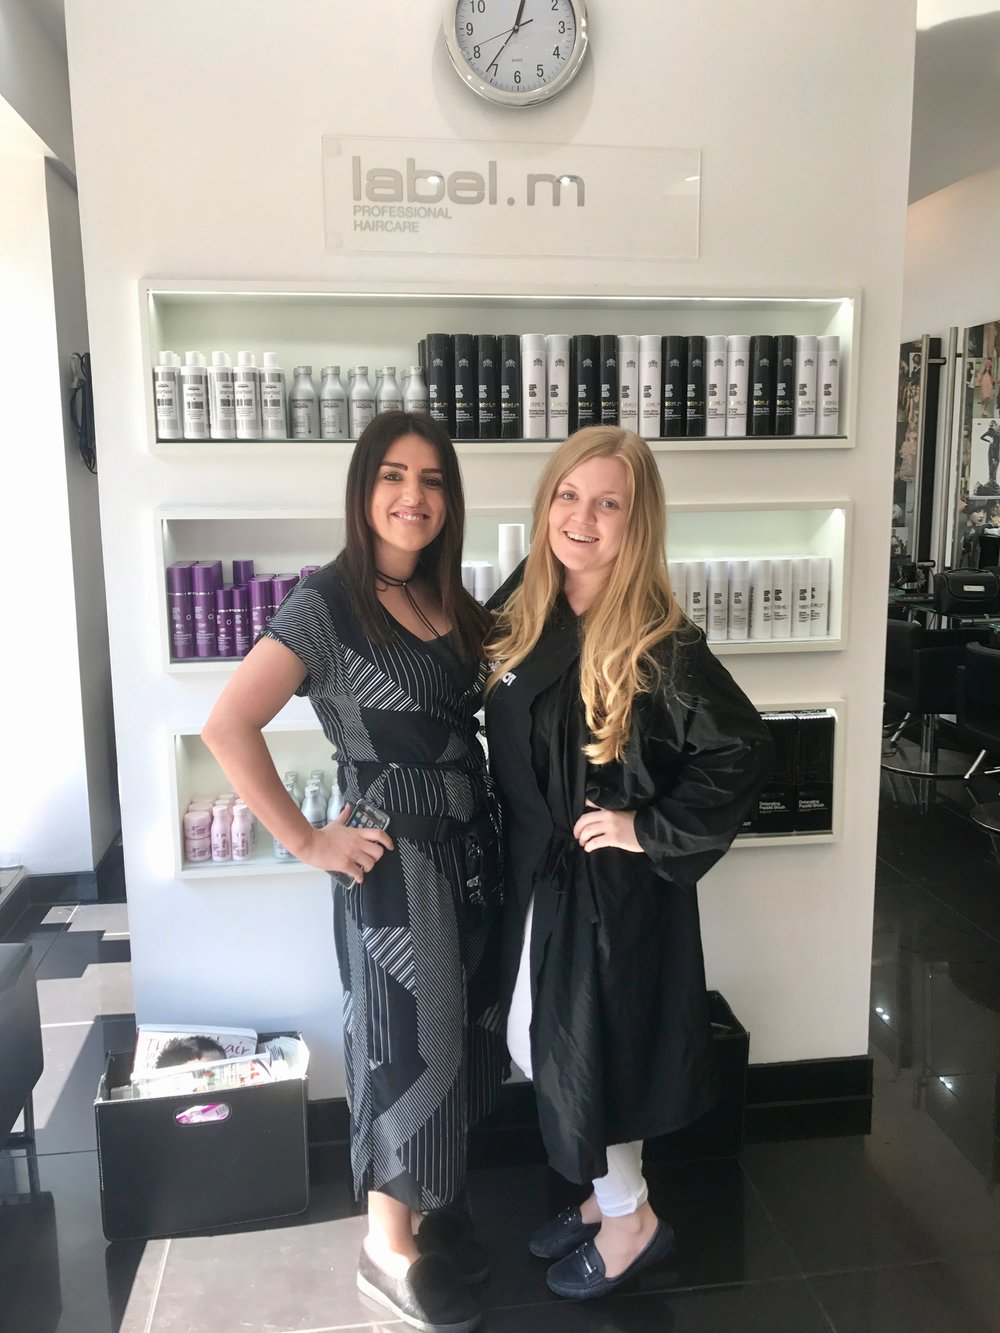 toni-and-guy-newcastle-ridley-place-hairdressers-in-newcastle-elle-blonde-luxury-lifestyle-blog